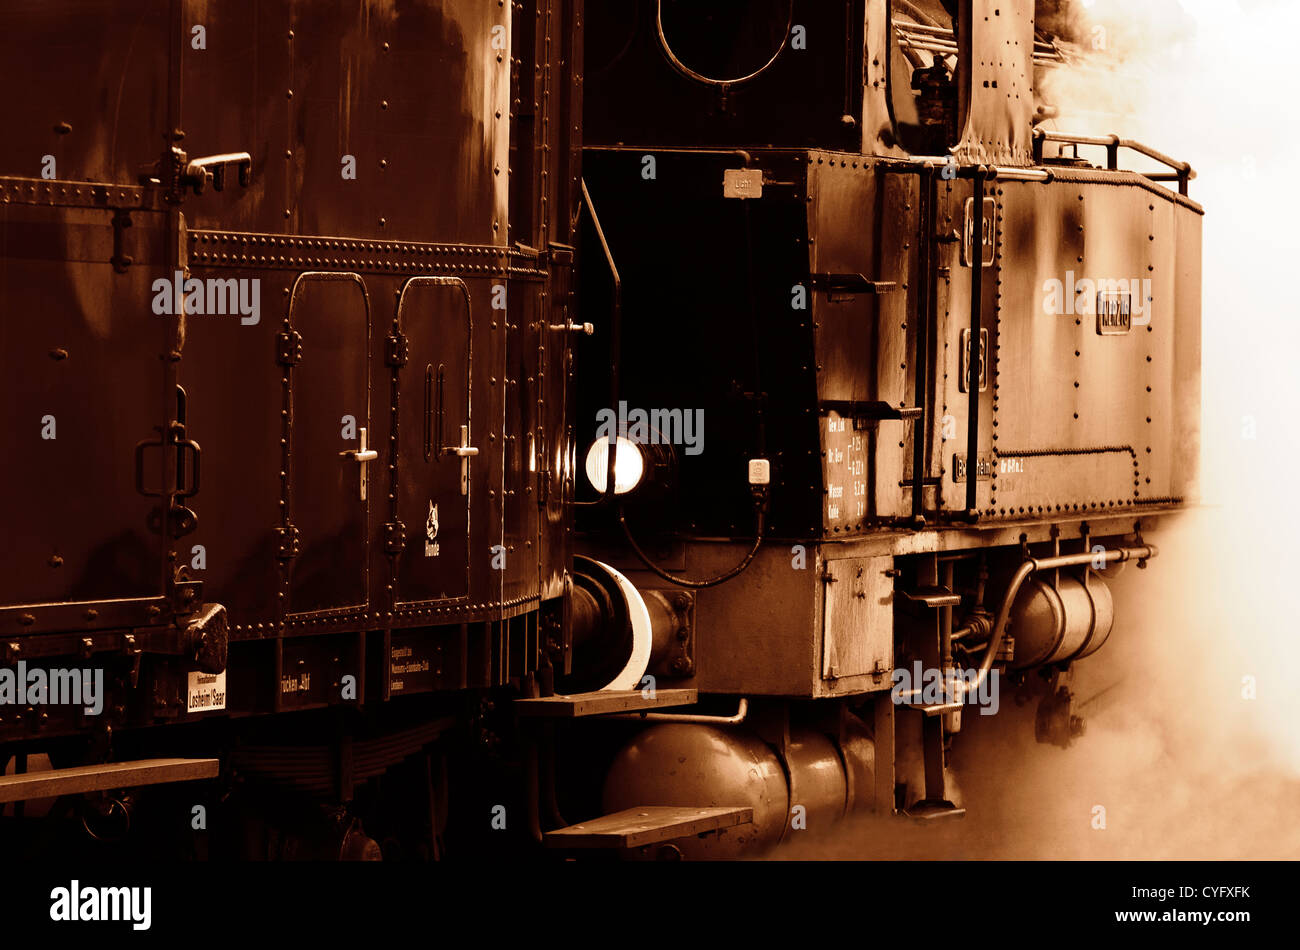 a steam locomotive Stock Photo